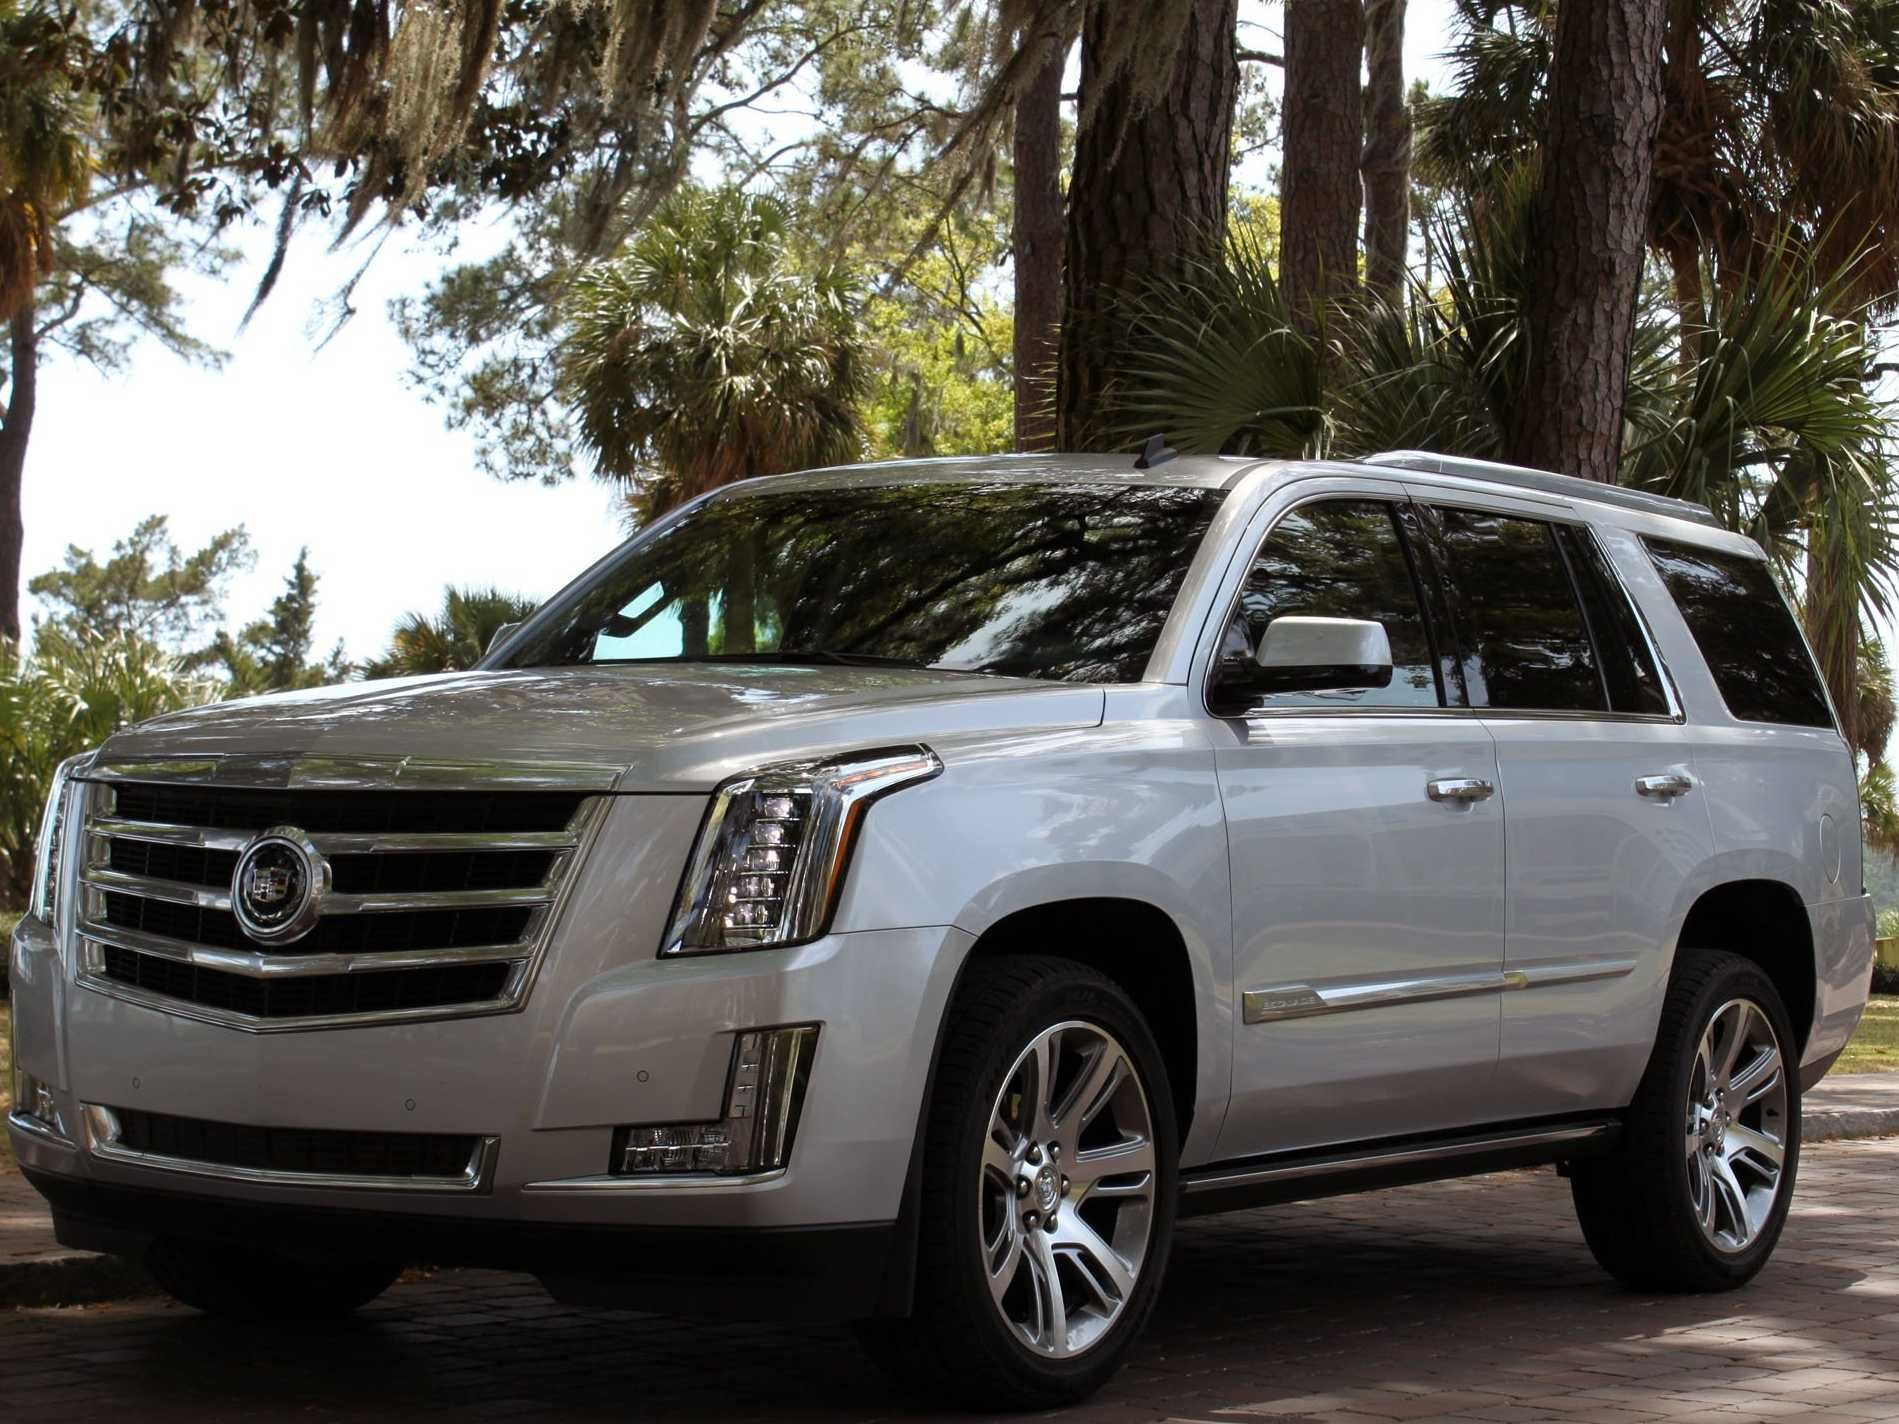 2017 cadillac xt5 changes price and release date the new luxury crossover like 2017 cadillac xt5 will be the very good and awesome vehicle pinterest